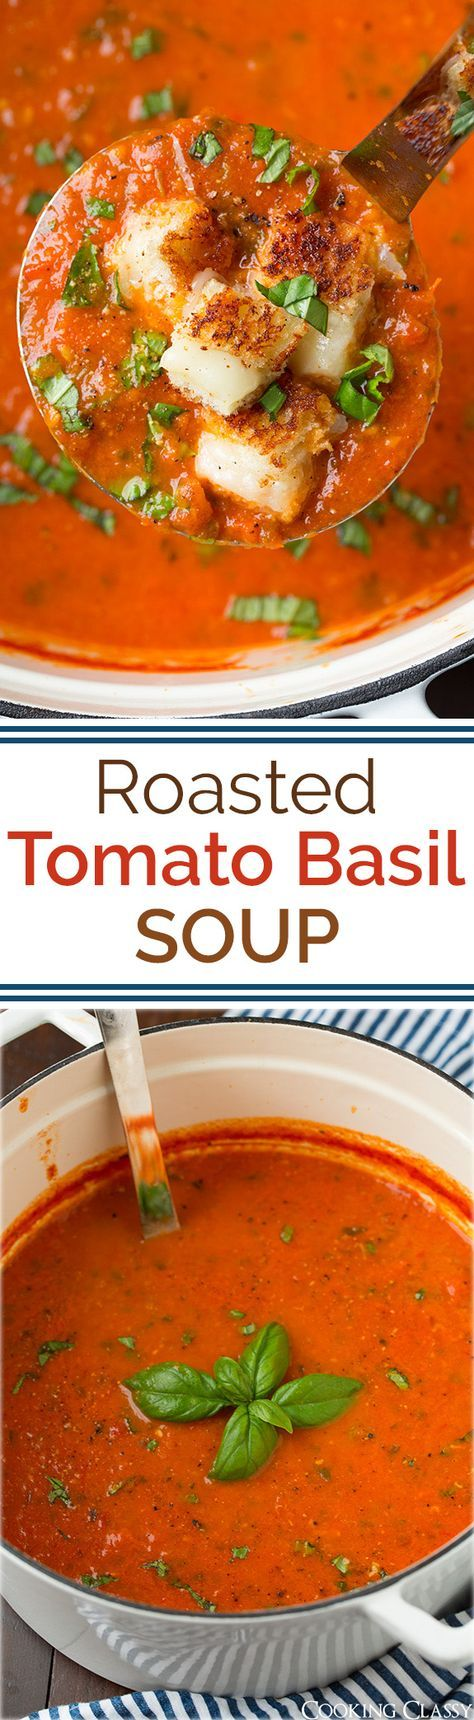 Roasted Tomato Basil Soup | Recipe | Classy, Cooking and ...